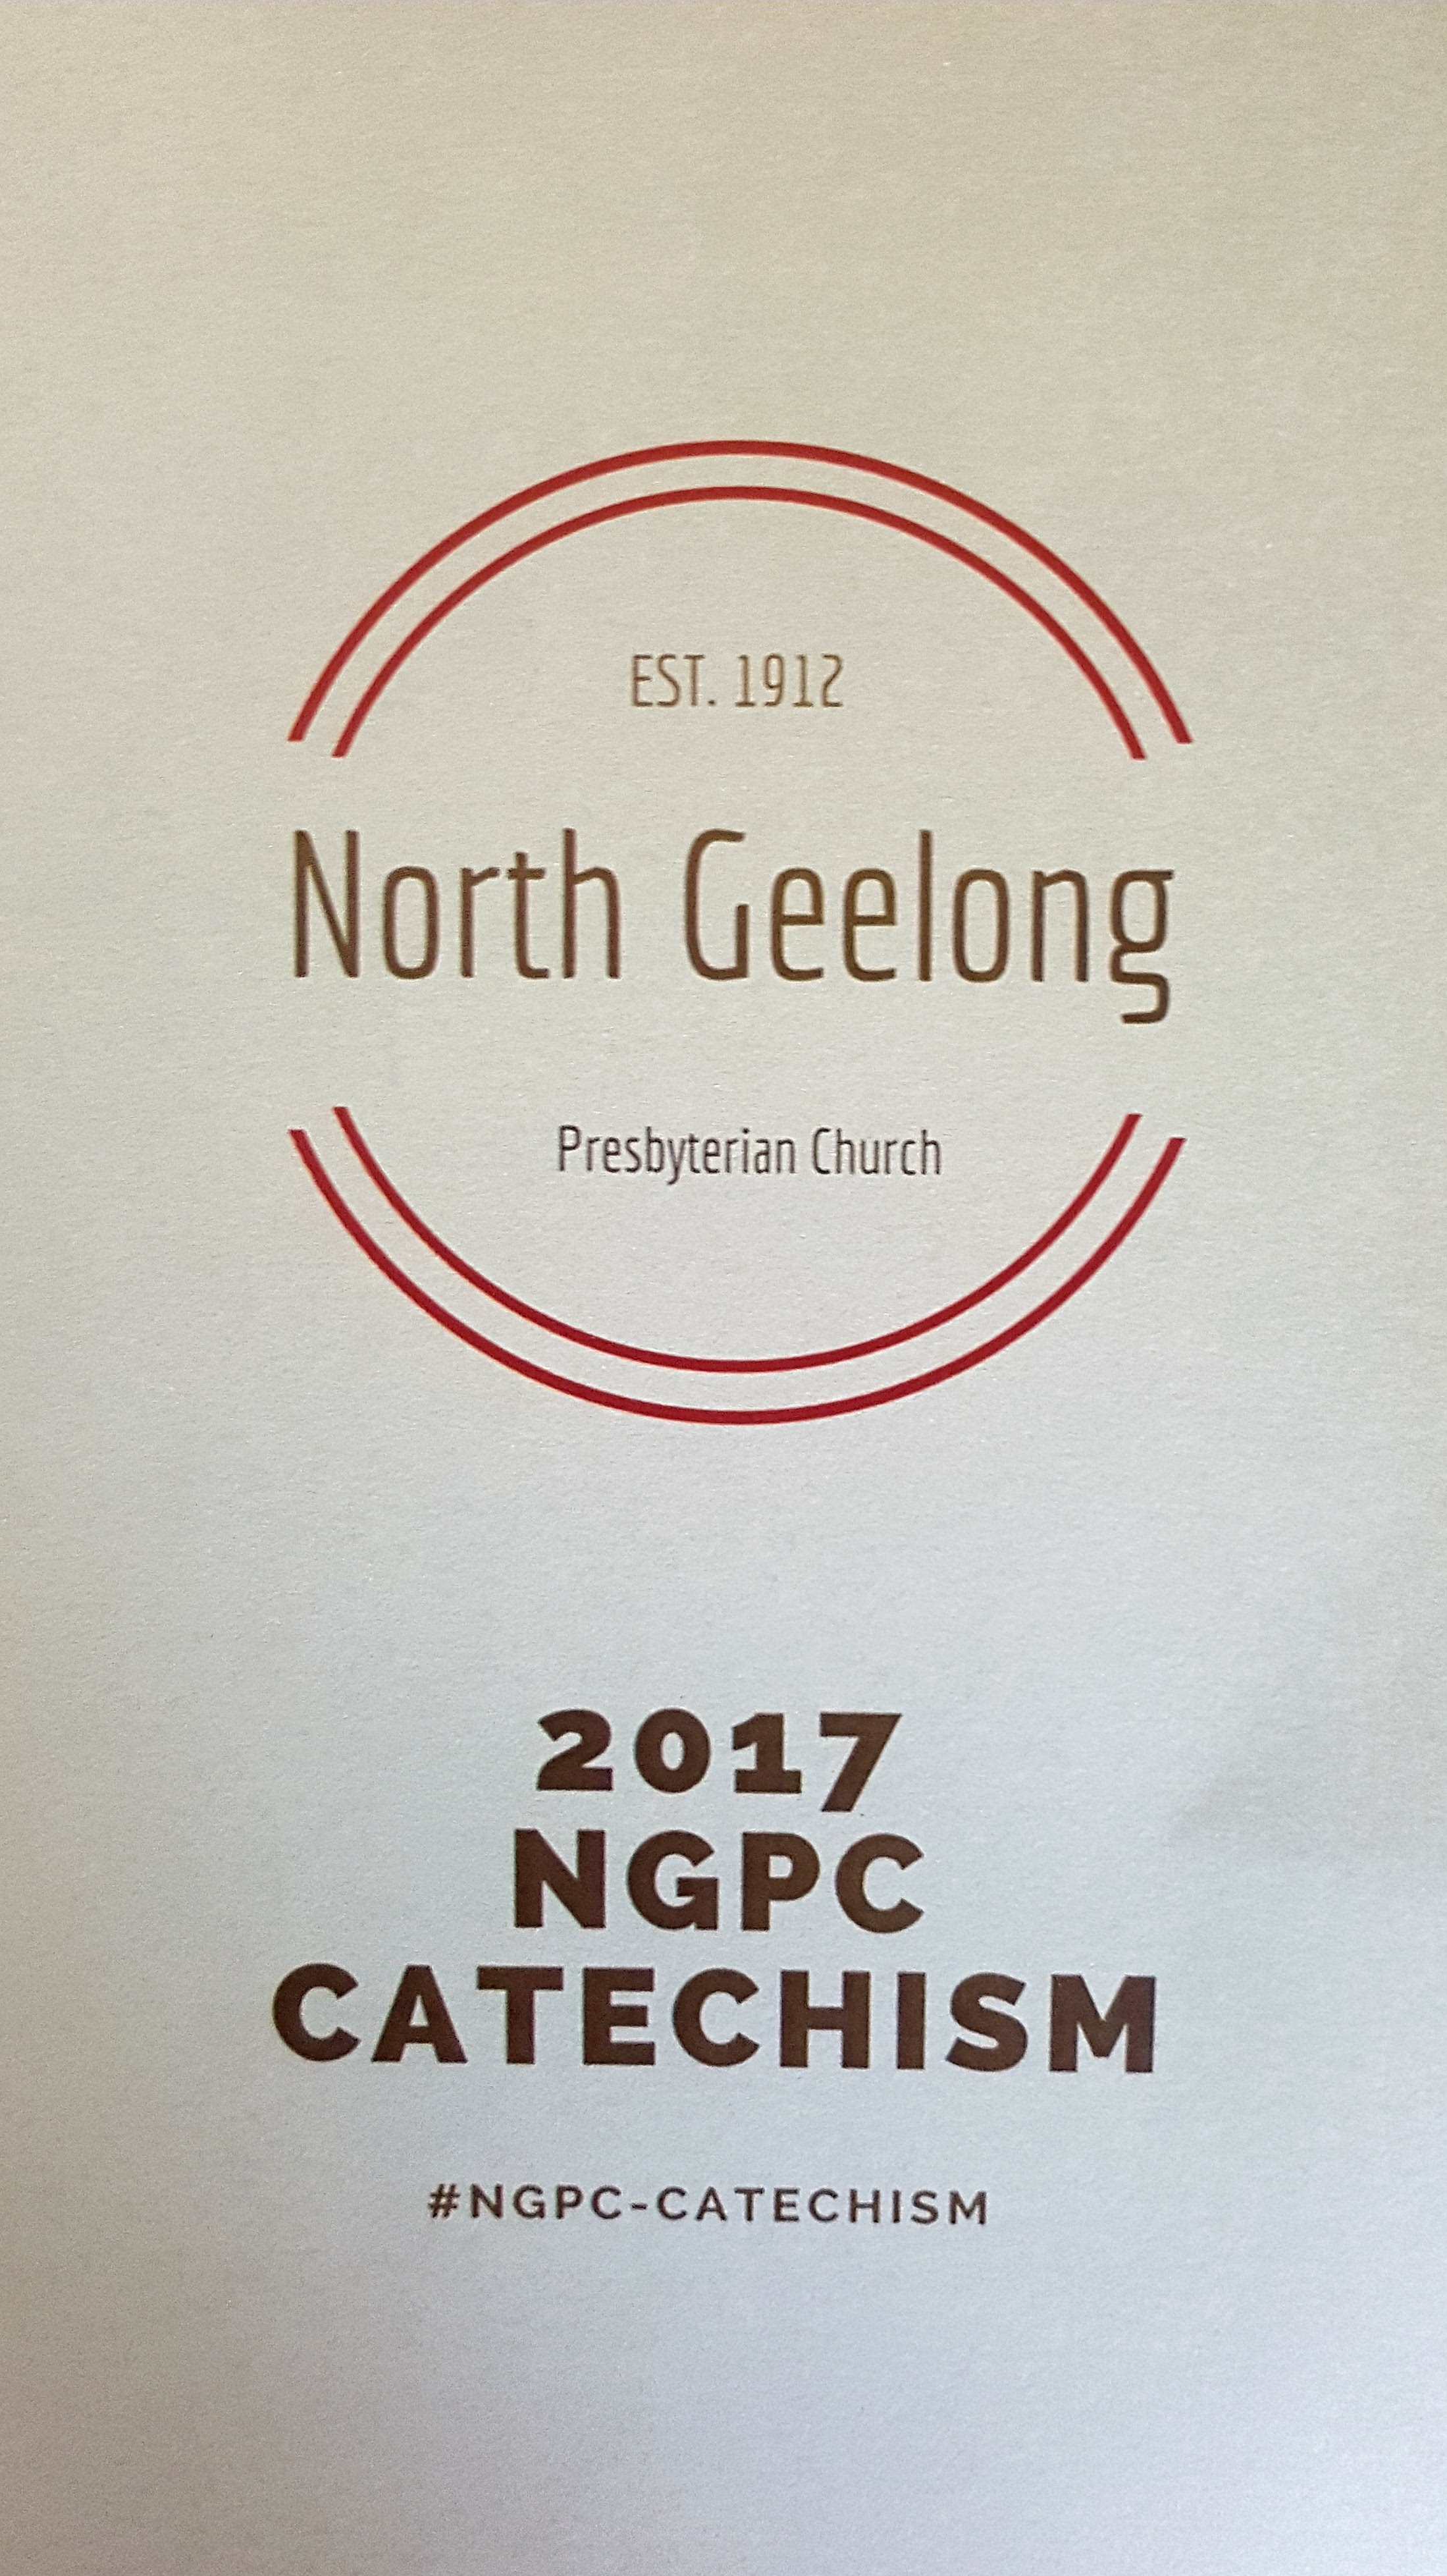 NGPC Catechism -